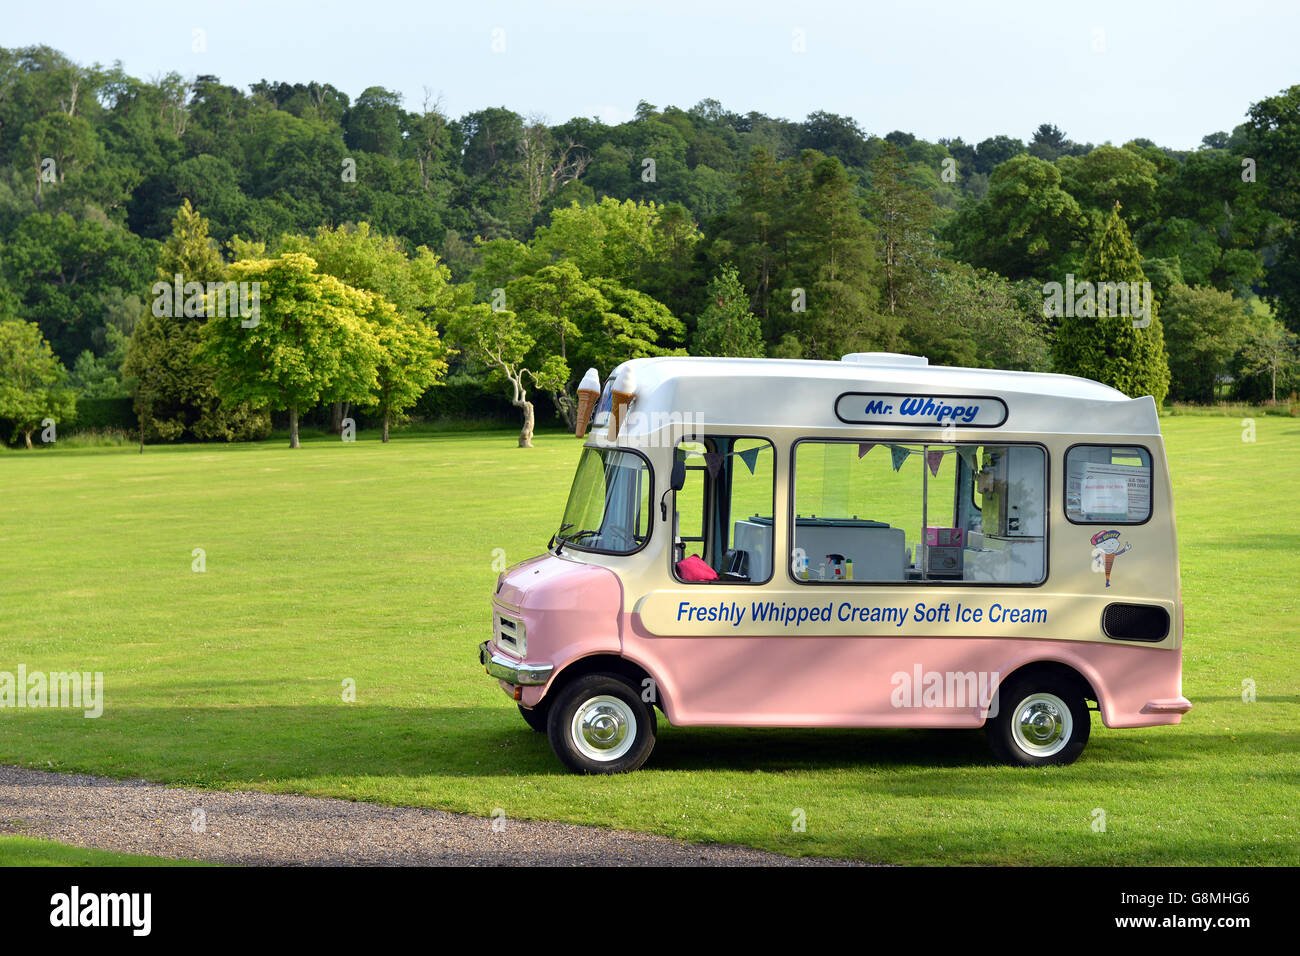 Vintage Mr Whippy Ice cream van - Stock Image